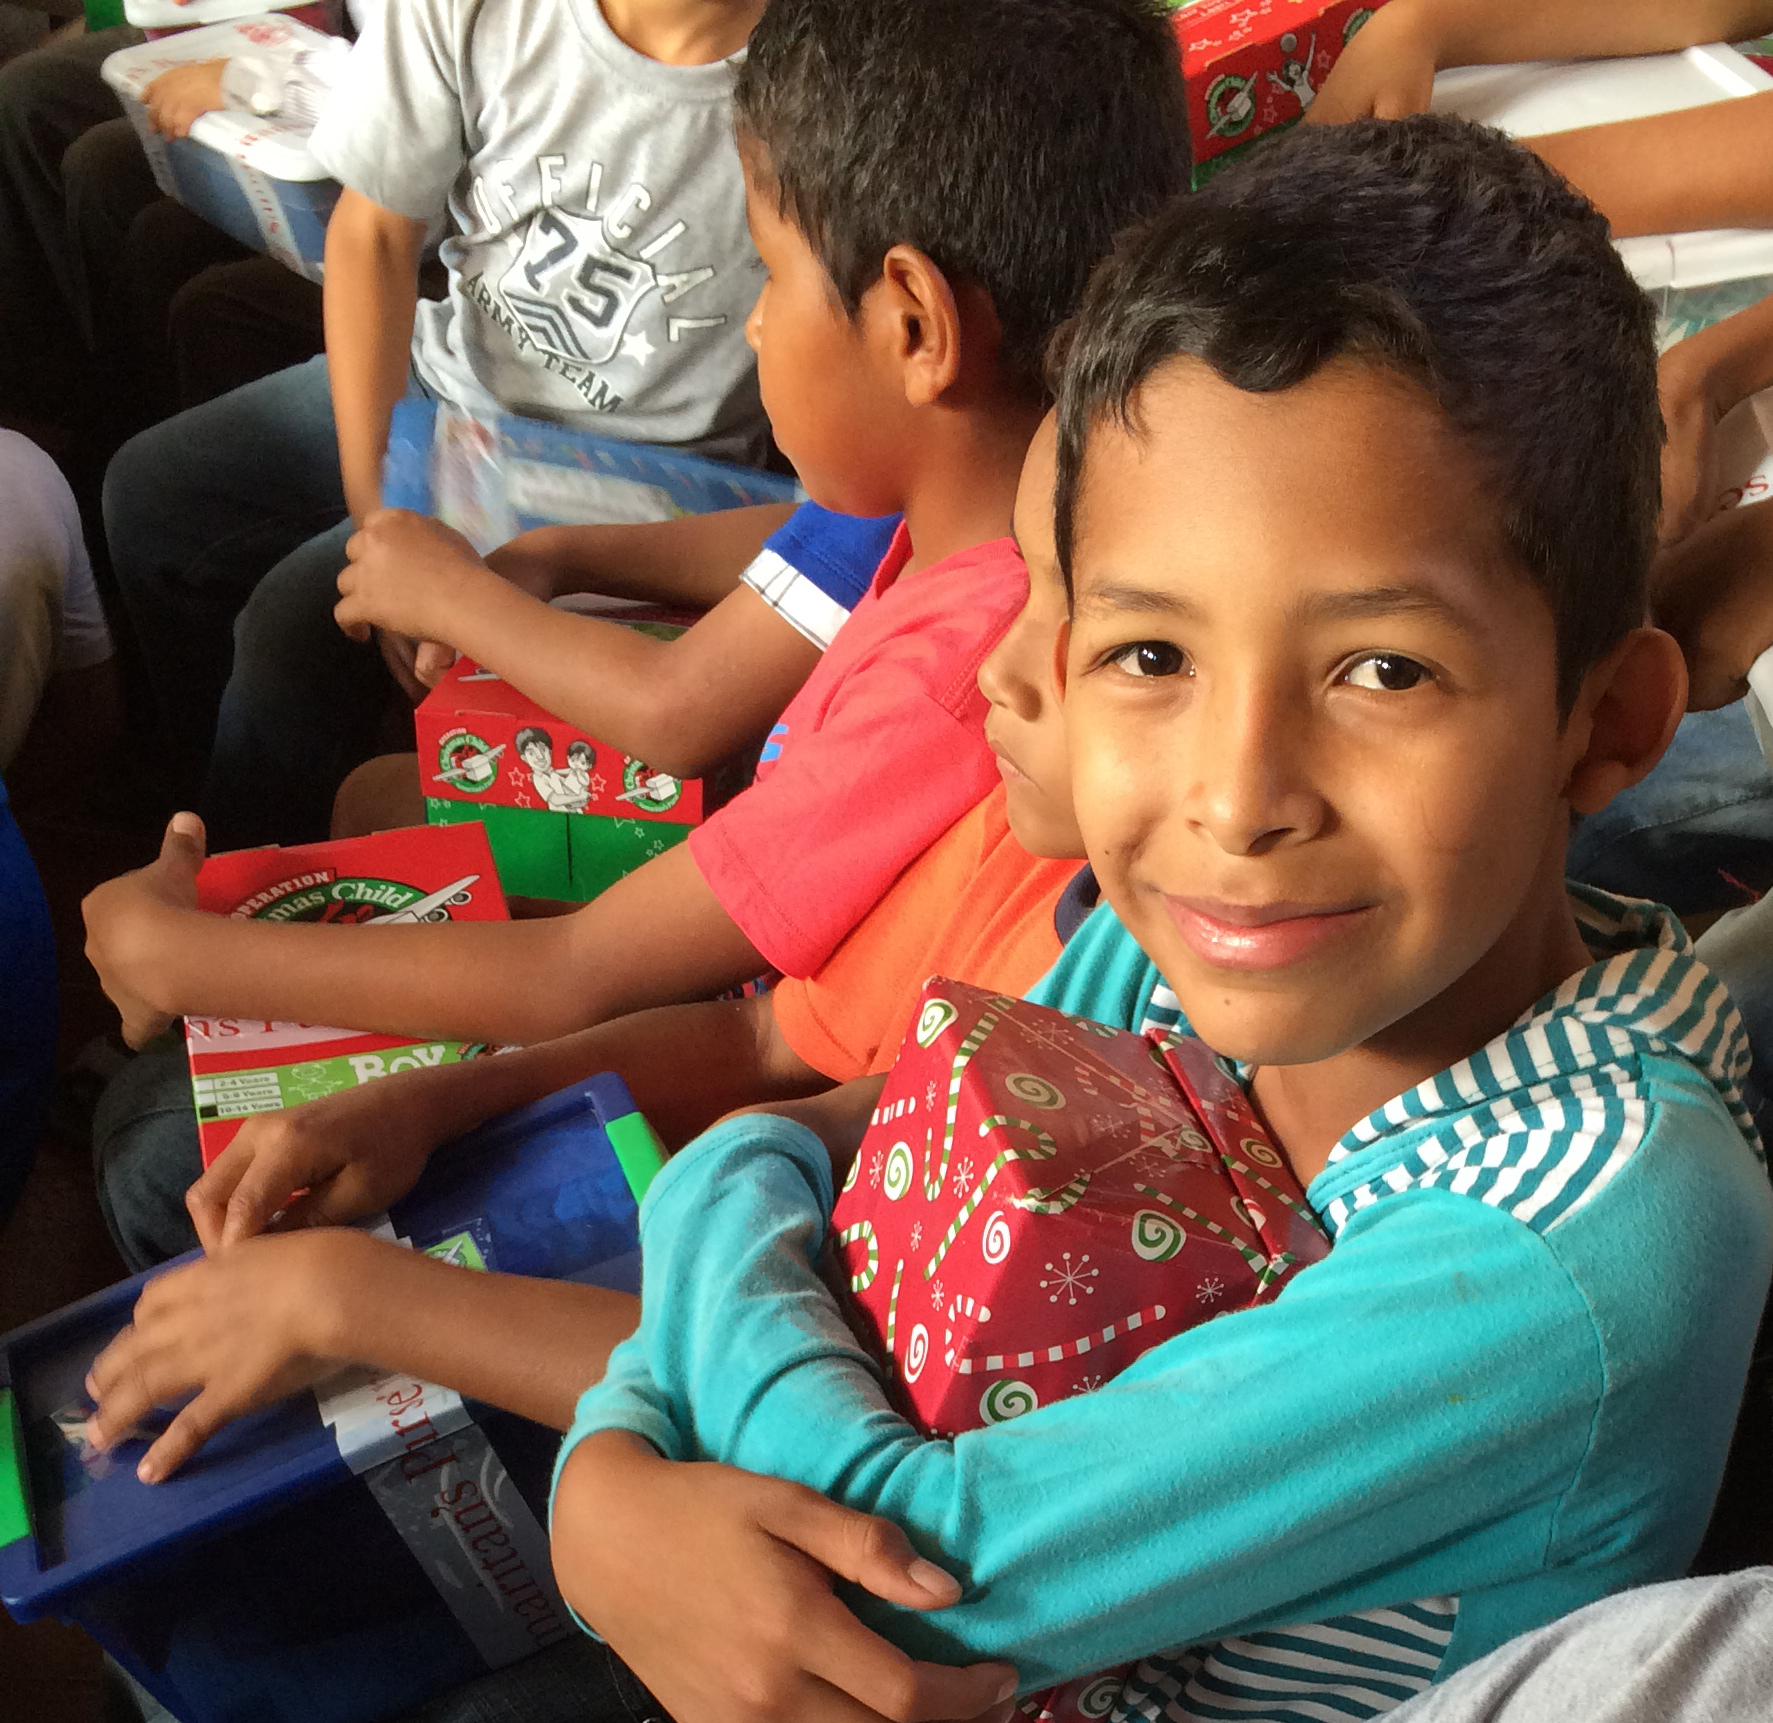 Operation Christmas Child Colombia: Part 1 – The Box & The Child